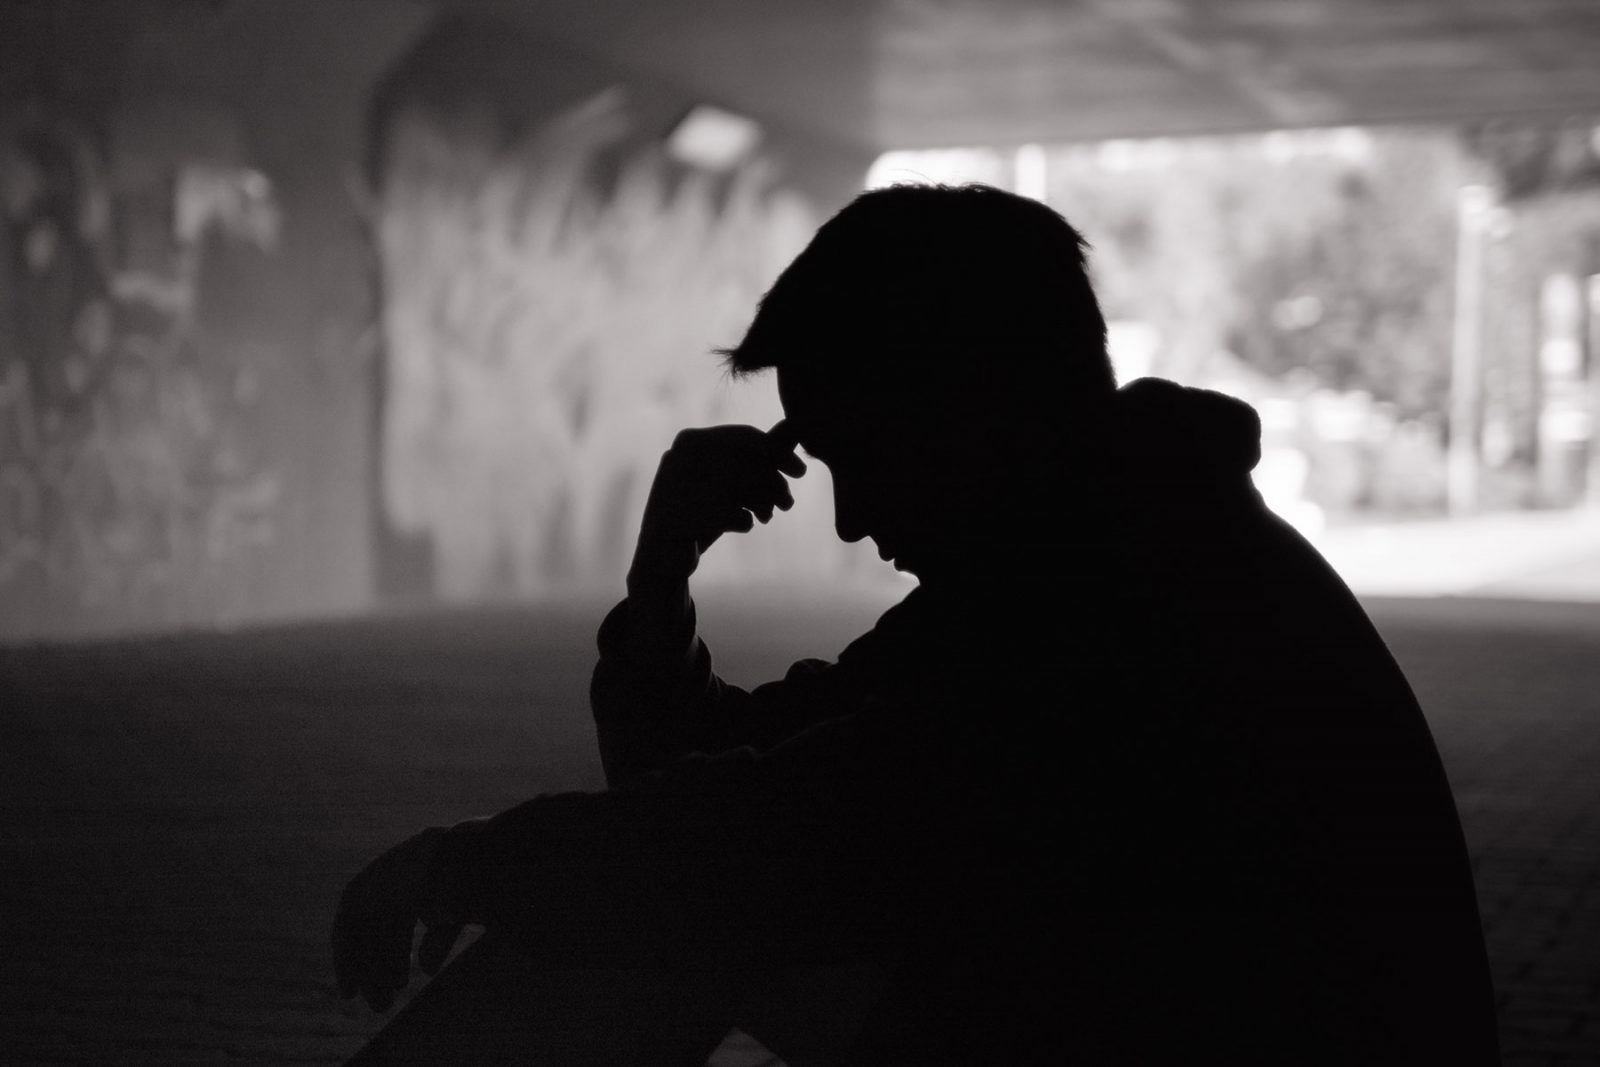 silhouette of a man sitting alone